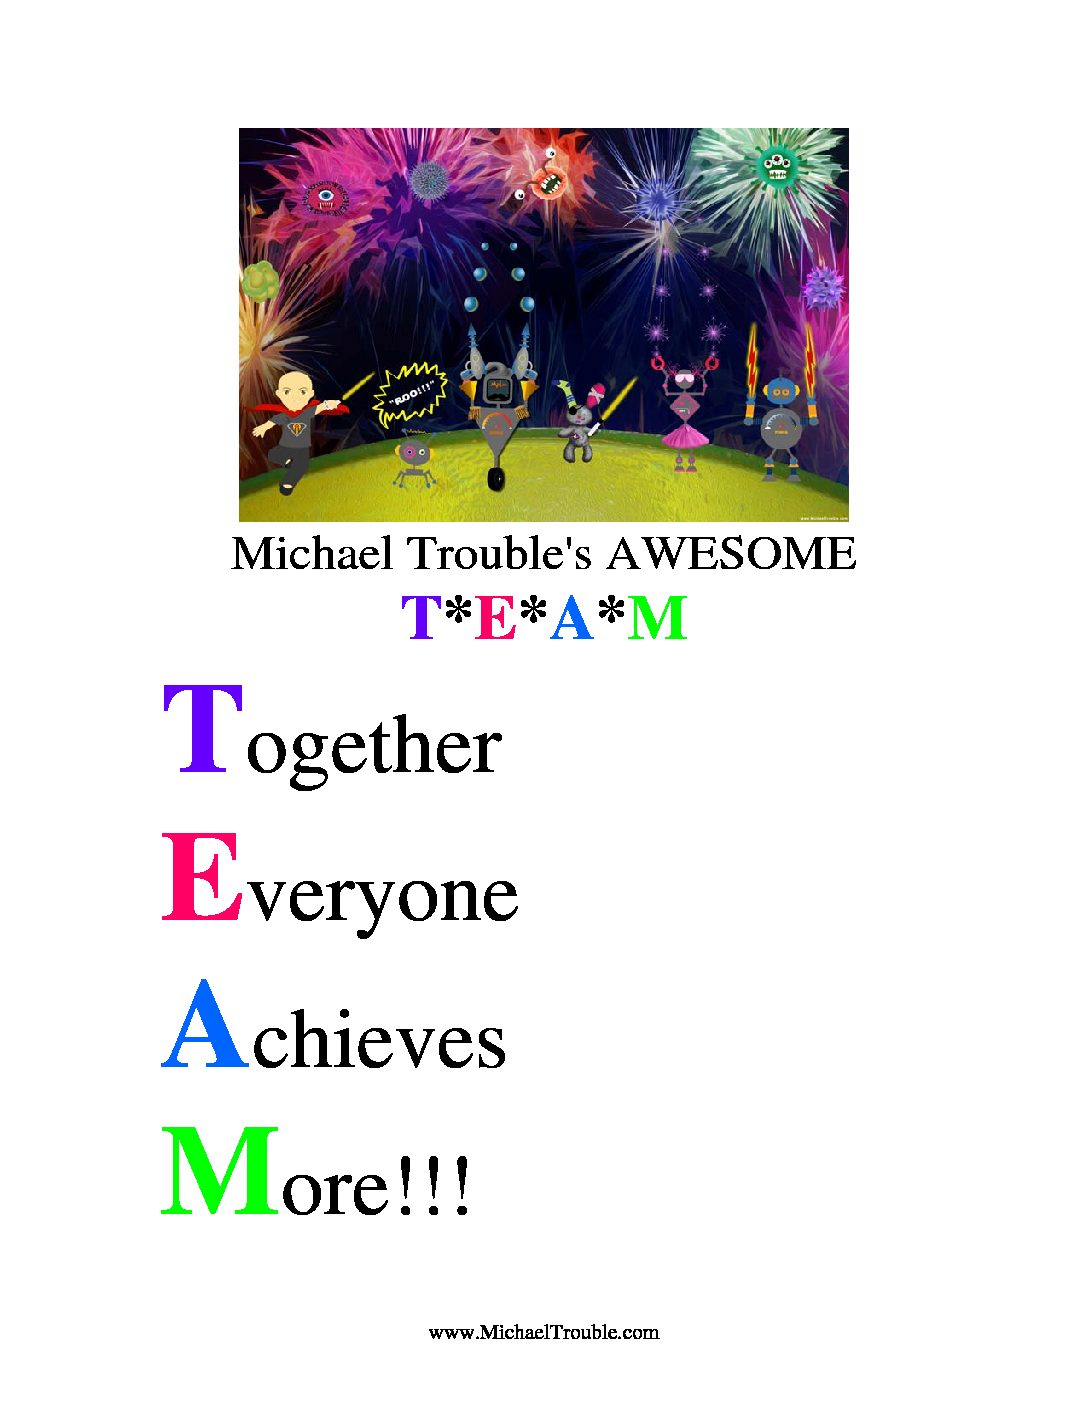 Michael Trouble Team